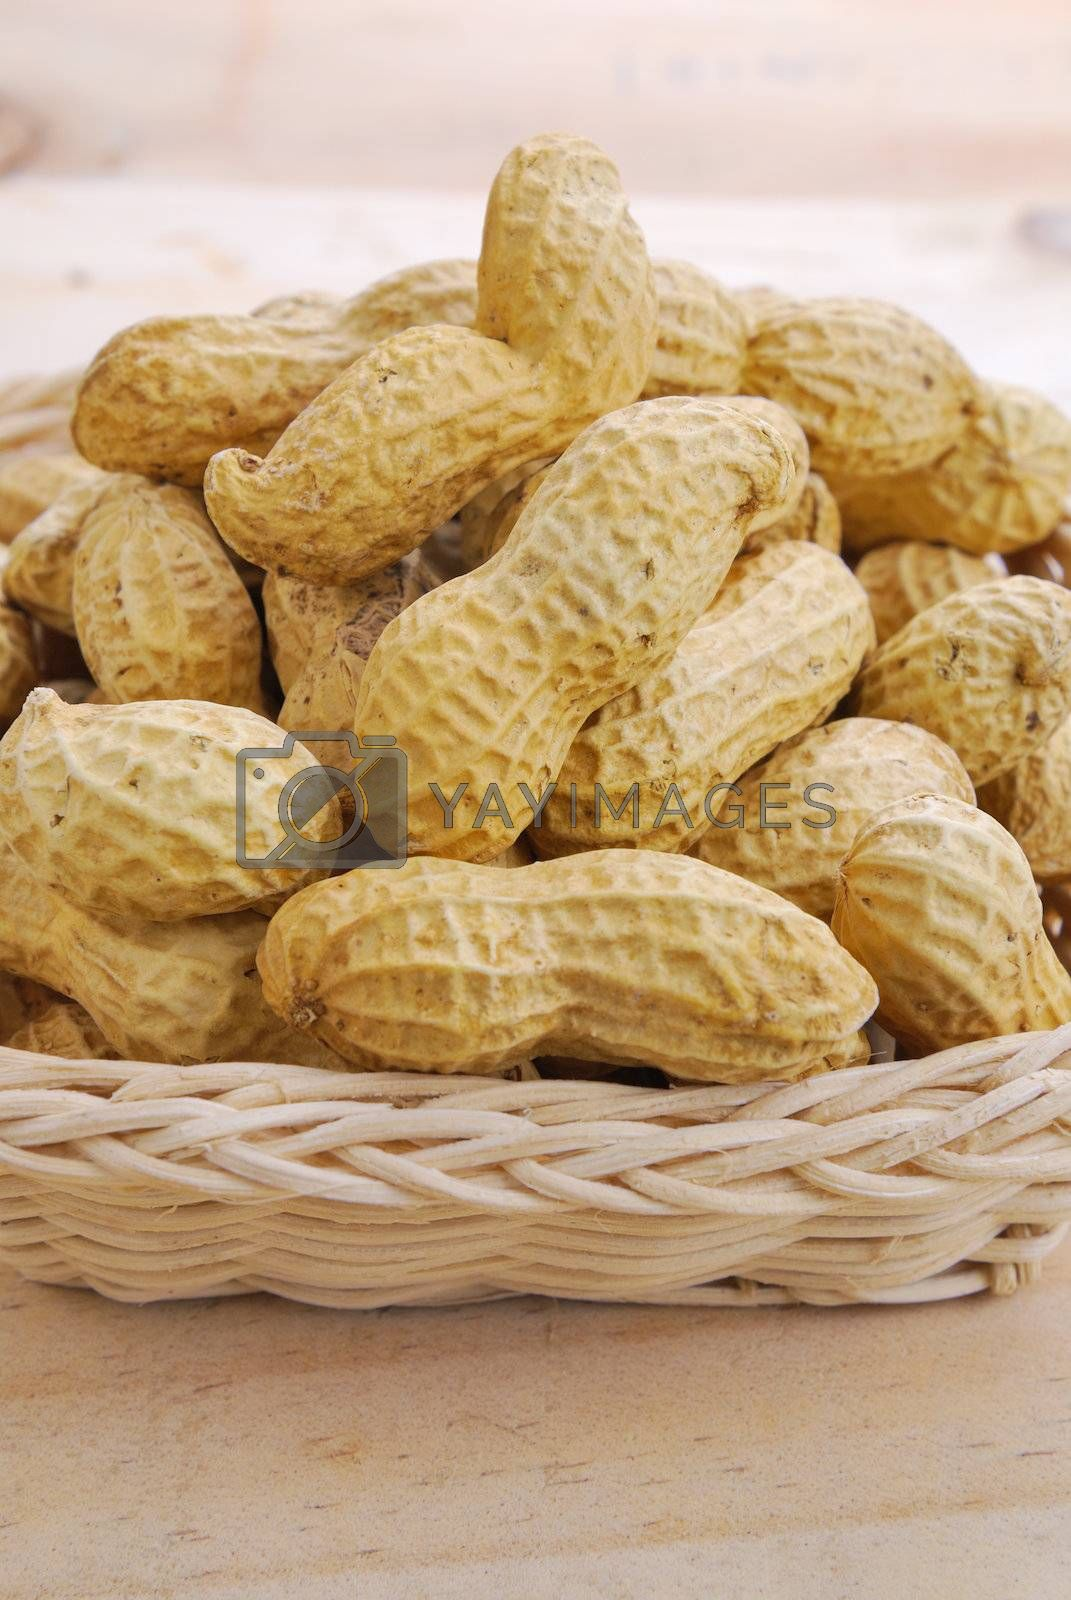 Royalty free image of Dried peanuts by teen00000